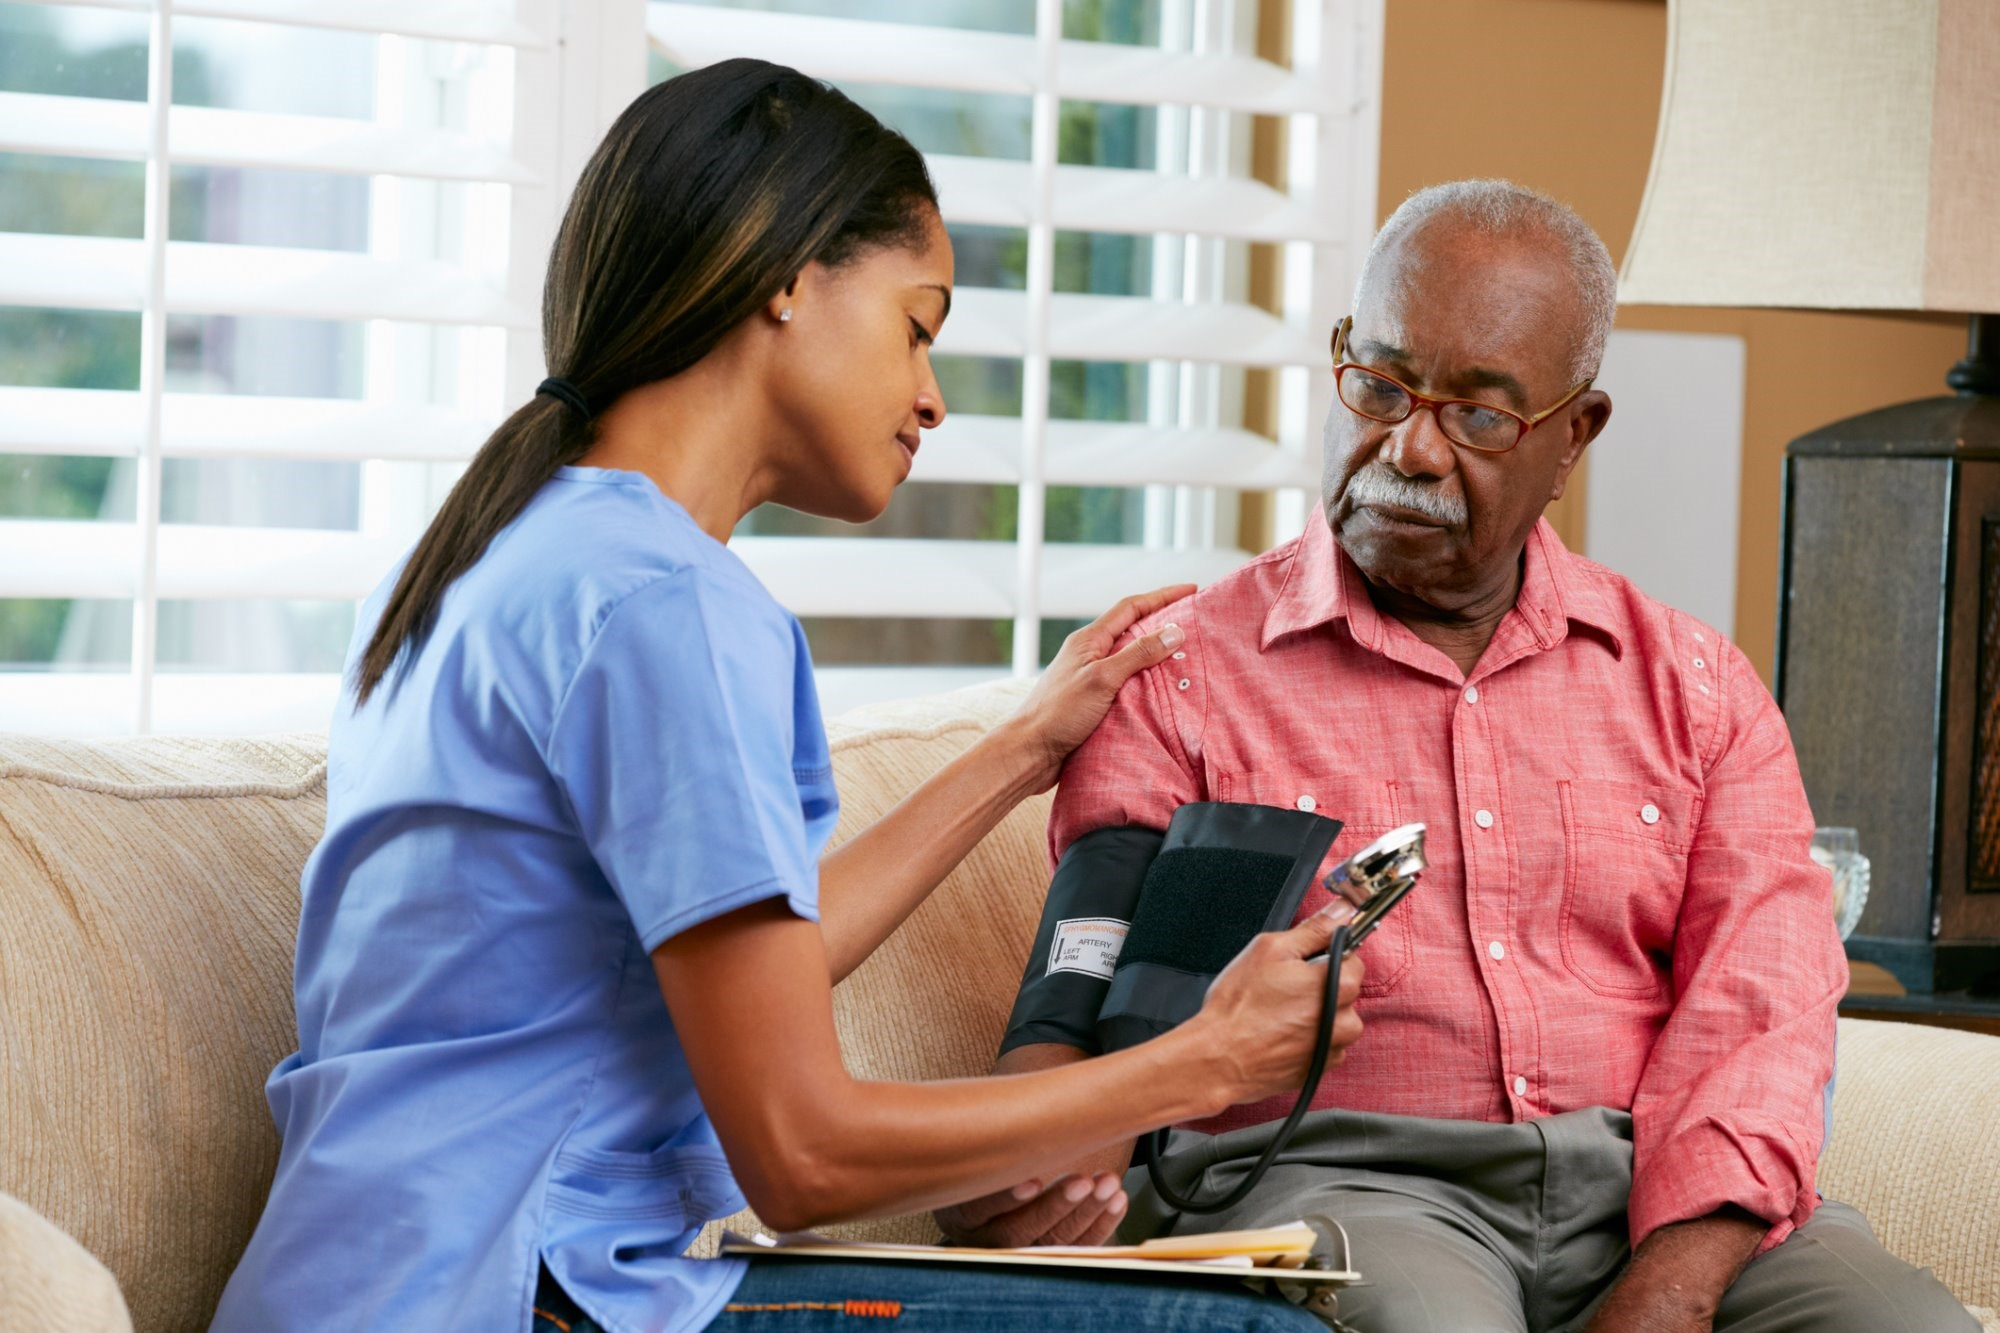 Even black men with relatively few comorbidities had increased risks of upgrading or upstaging compared with non-black patients.